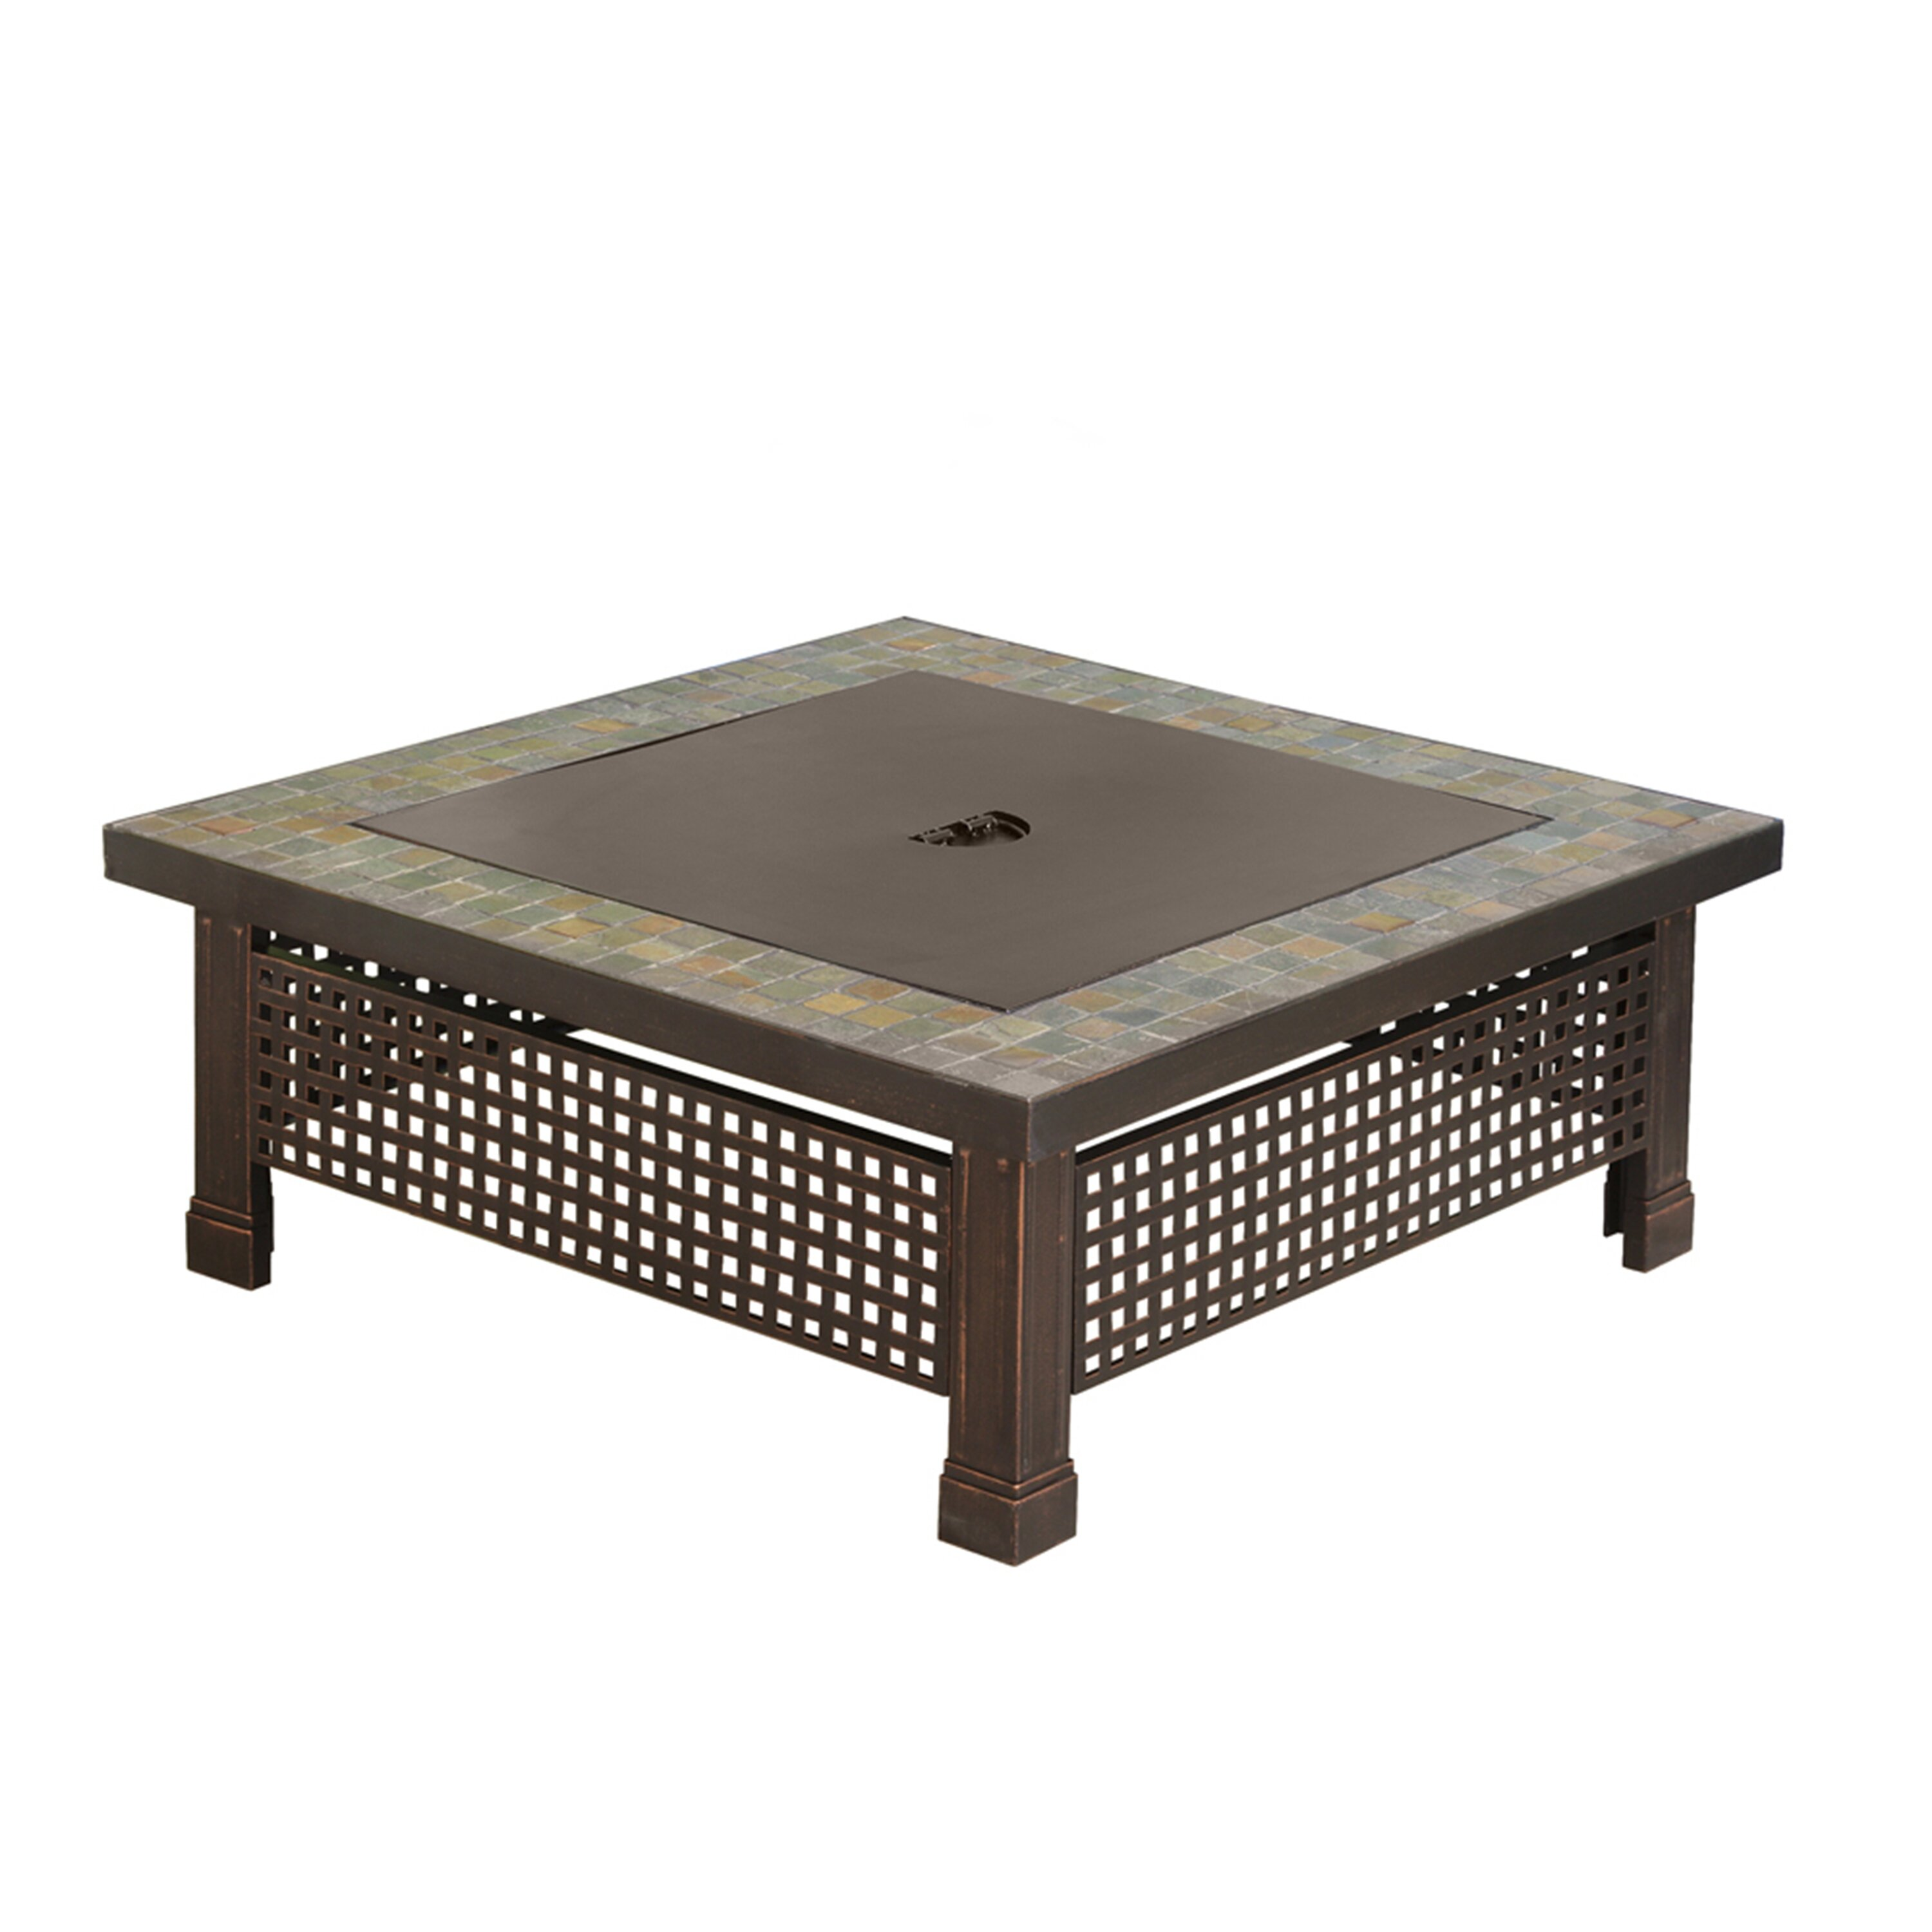 Portable Outdoor Fireplaces Fire Pits Youll Love Wayfair .  Portable Outdoor Fireplace